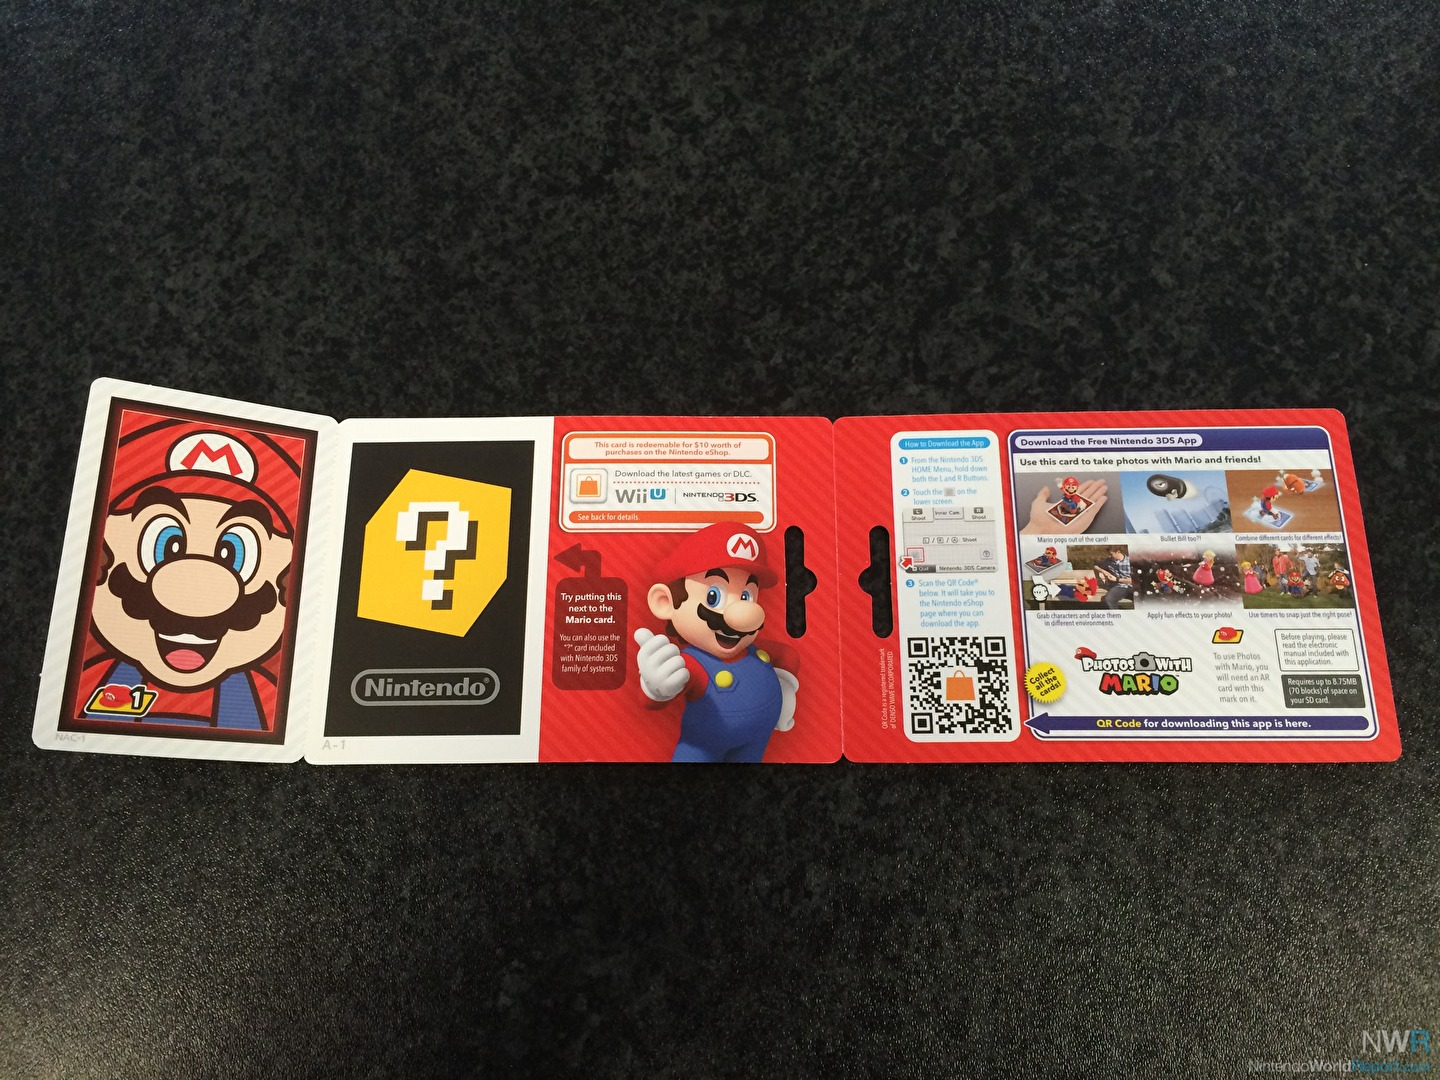 Unused 3ds points card codes - The Us Version Unfolds Like A Booklet And The Card Has To Be Cut Off